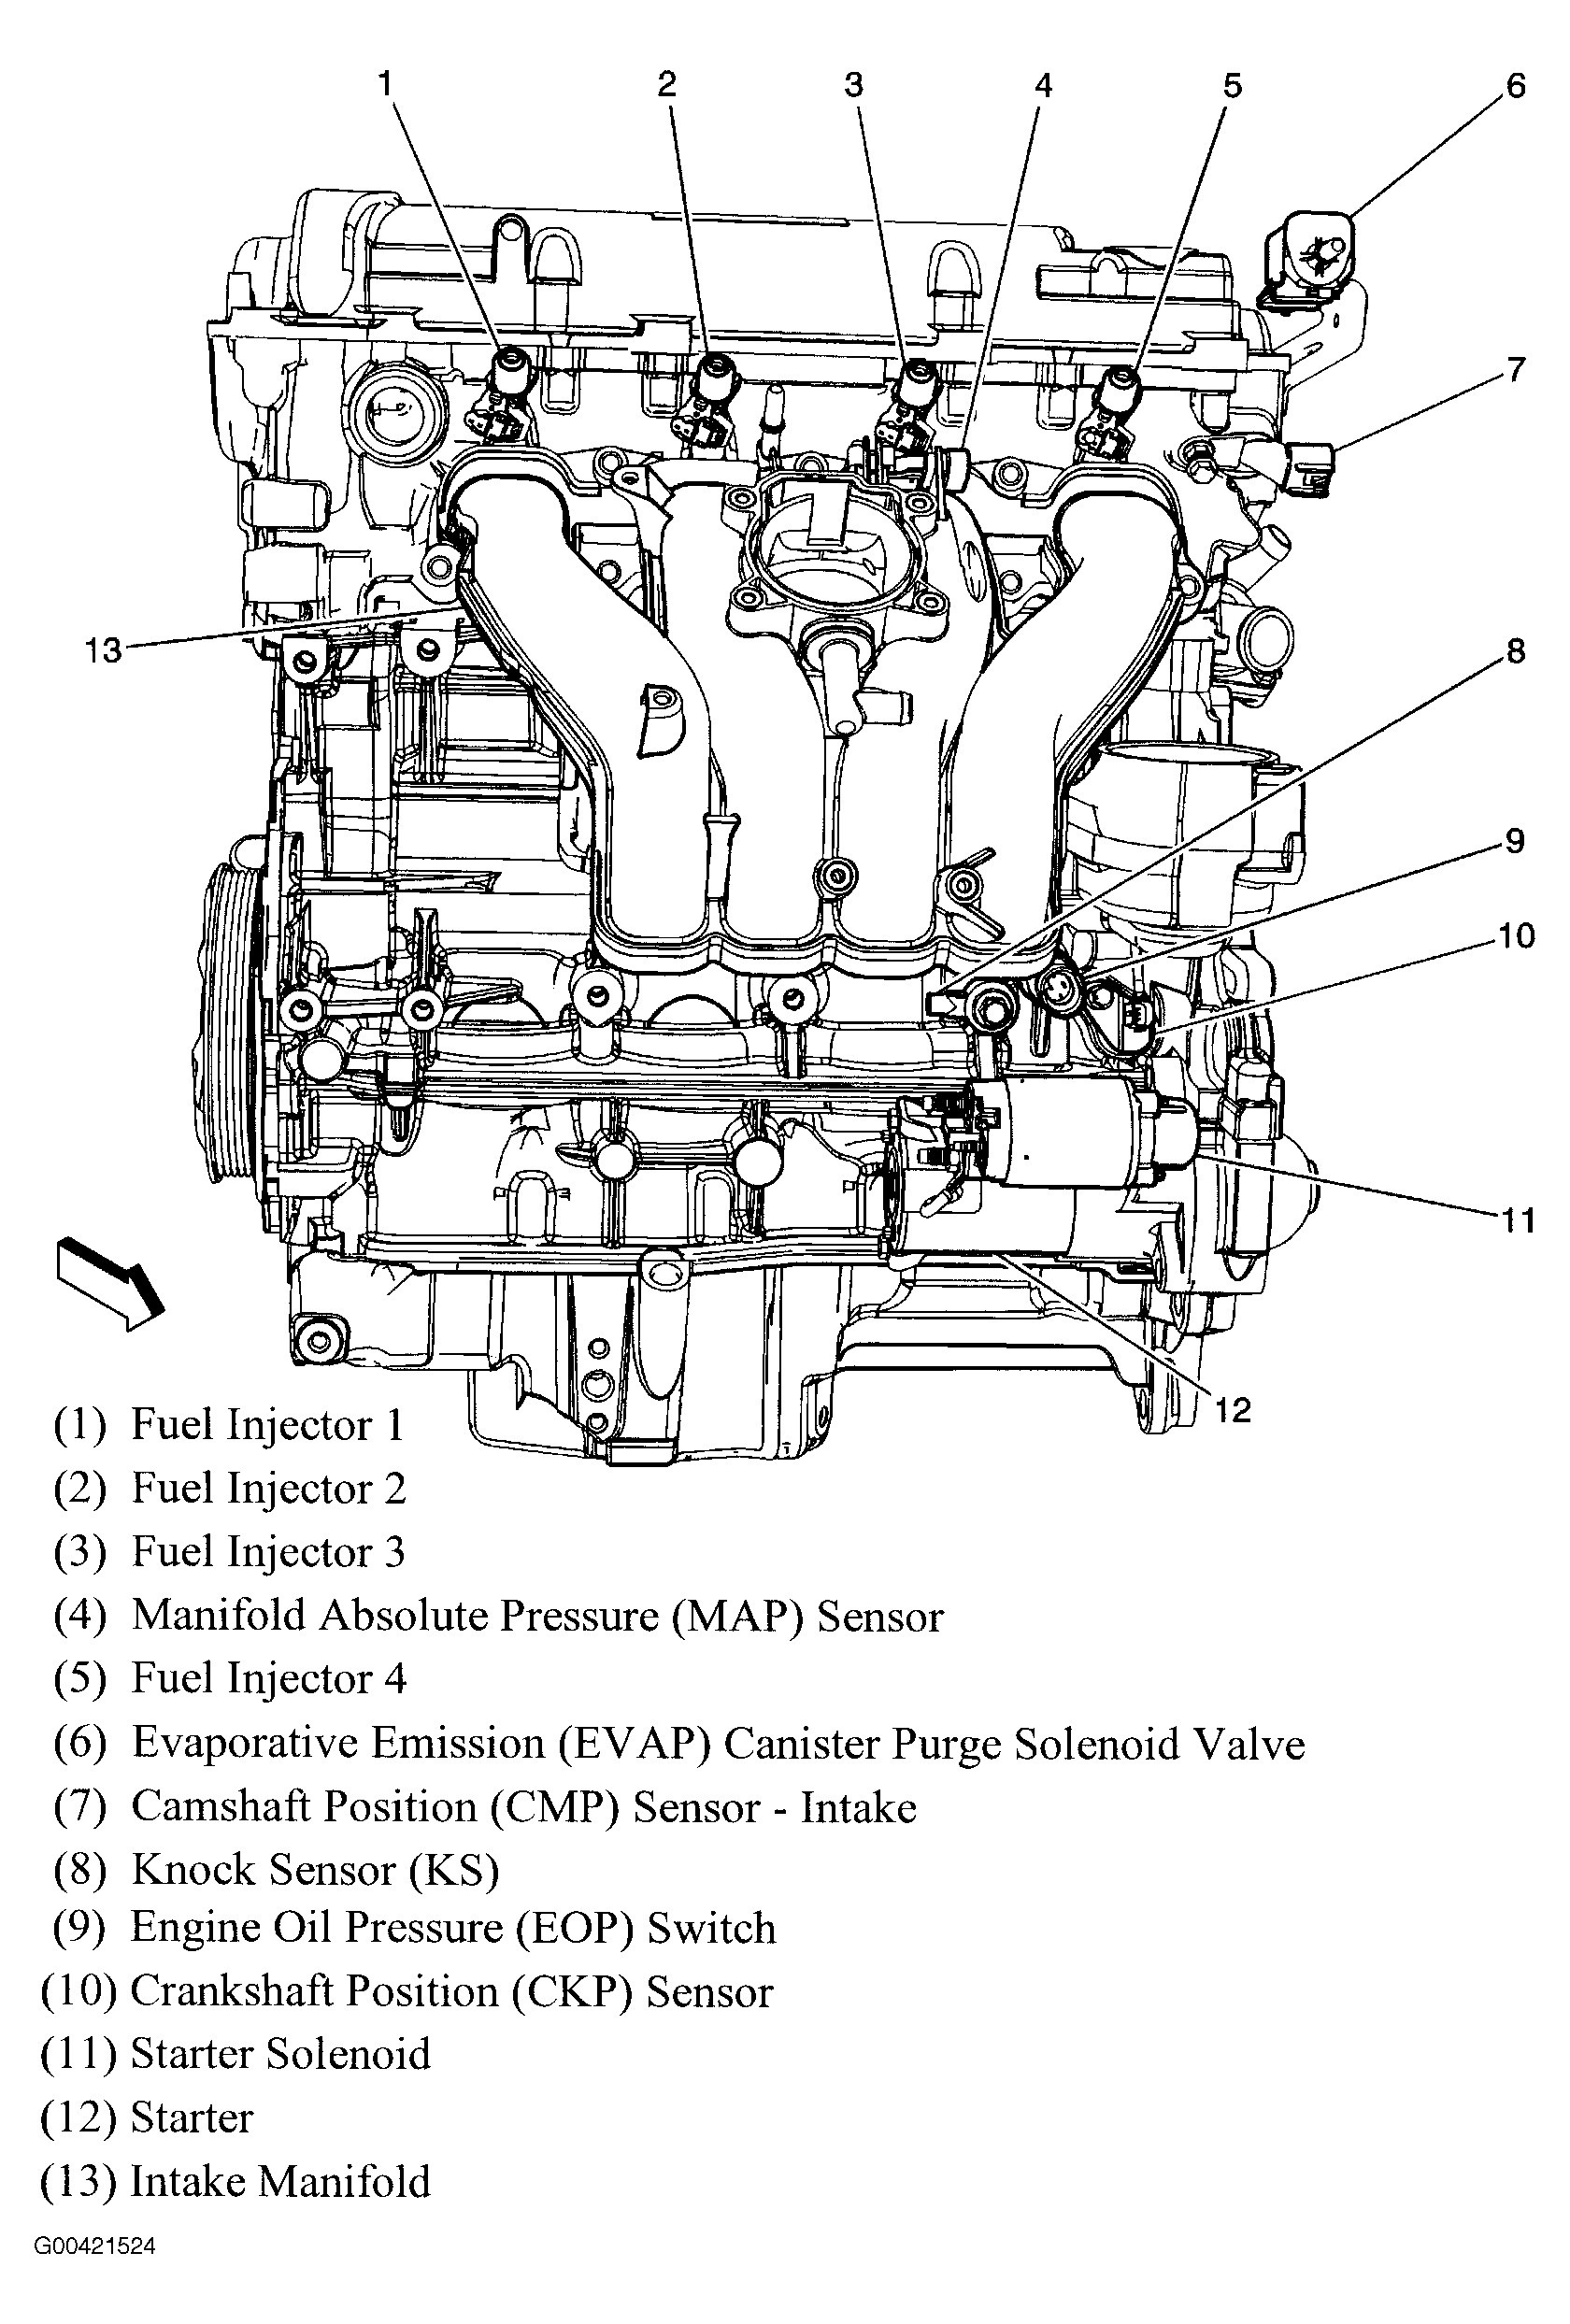 hight resolution of 1998 chevrolet cavalier 2 4 wiring diagram wiring diagram toolbox 1997 chevy cavalier engine diagram 2